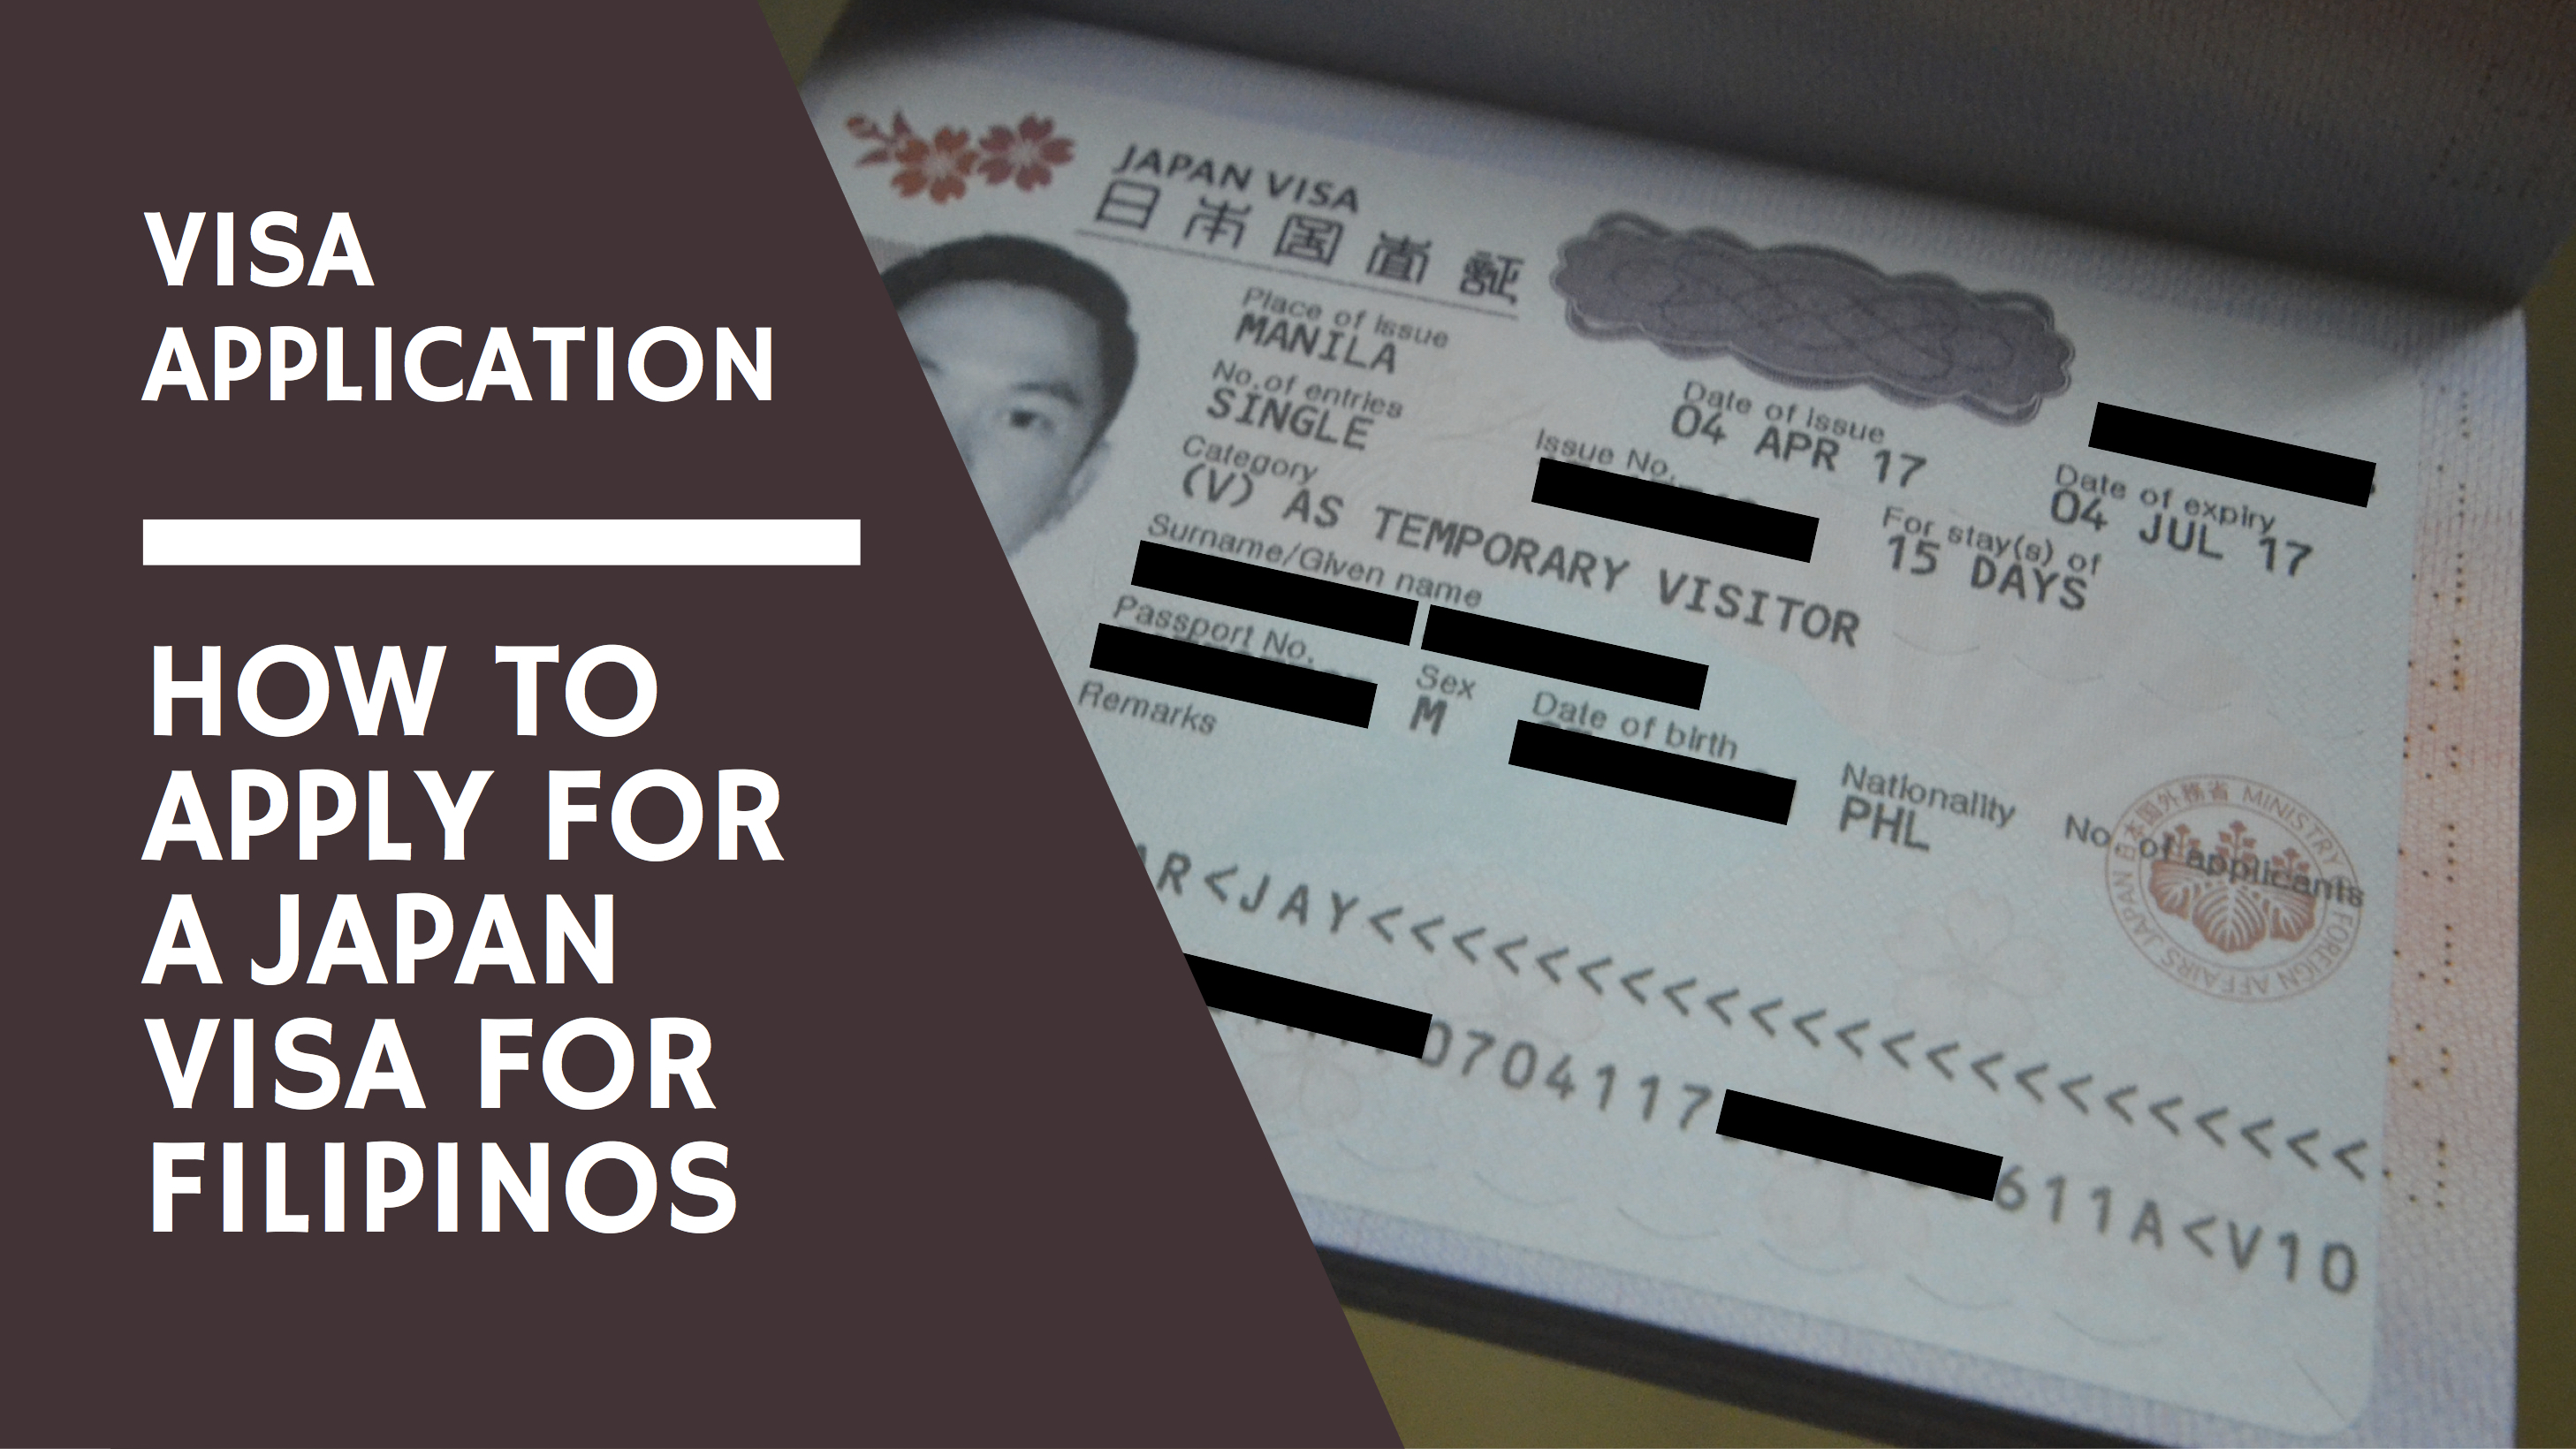 Visa Application How To Apply For A Japan Visa For Filipinos Iwander Iexperience Ikwento